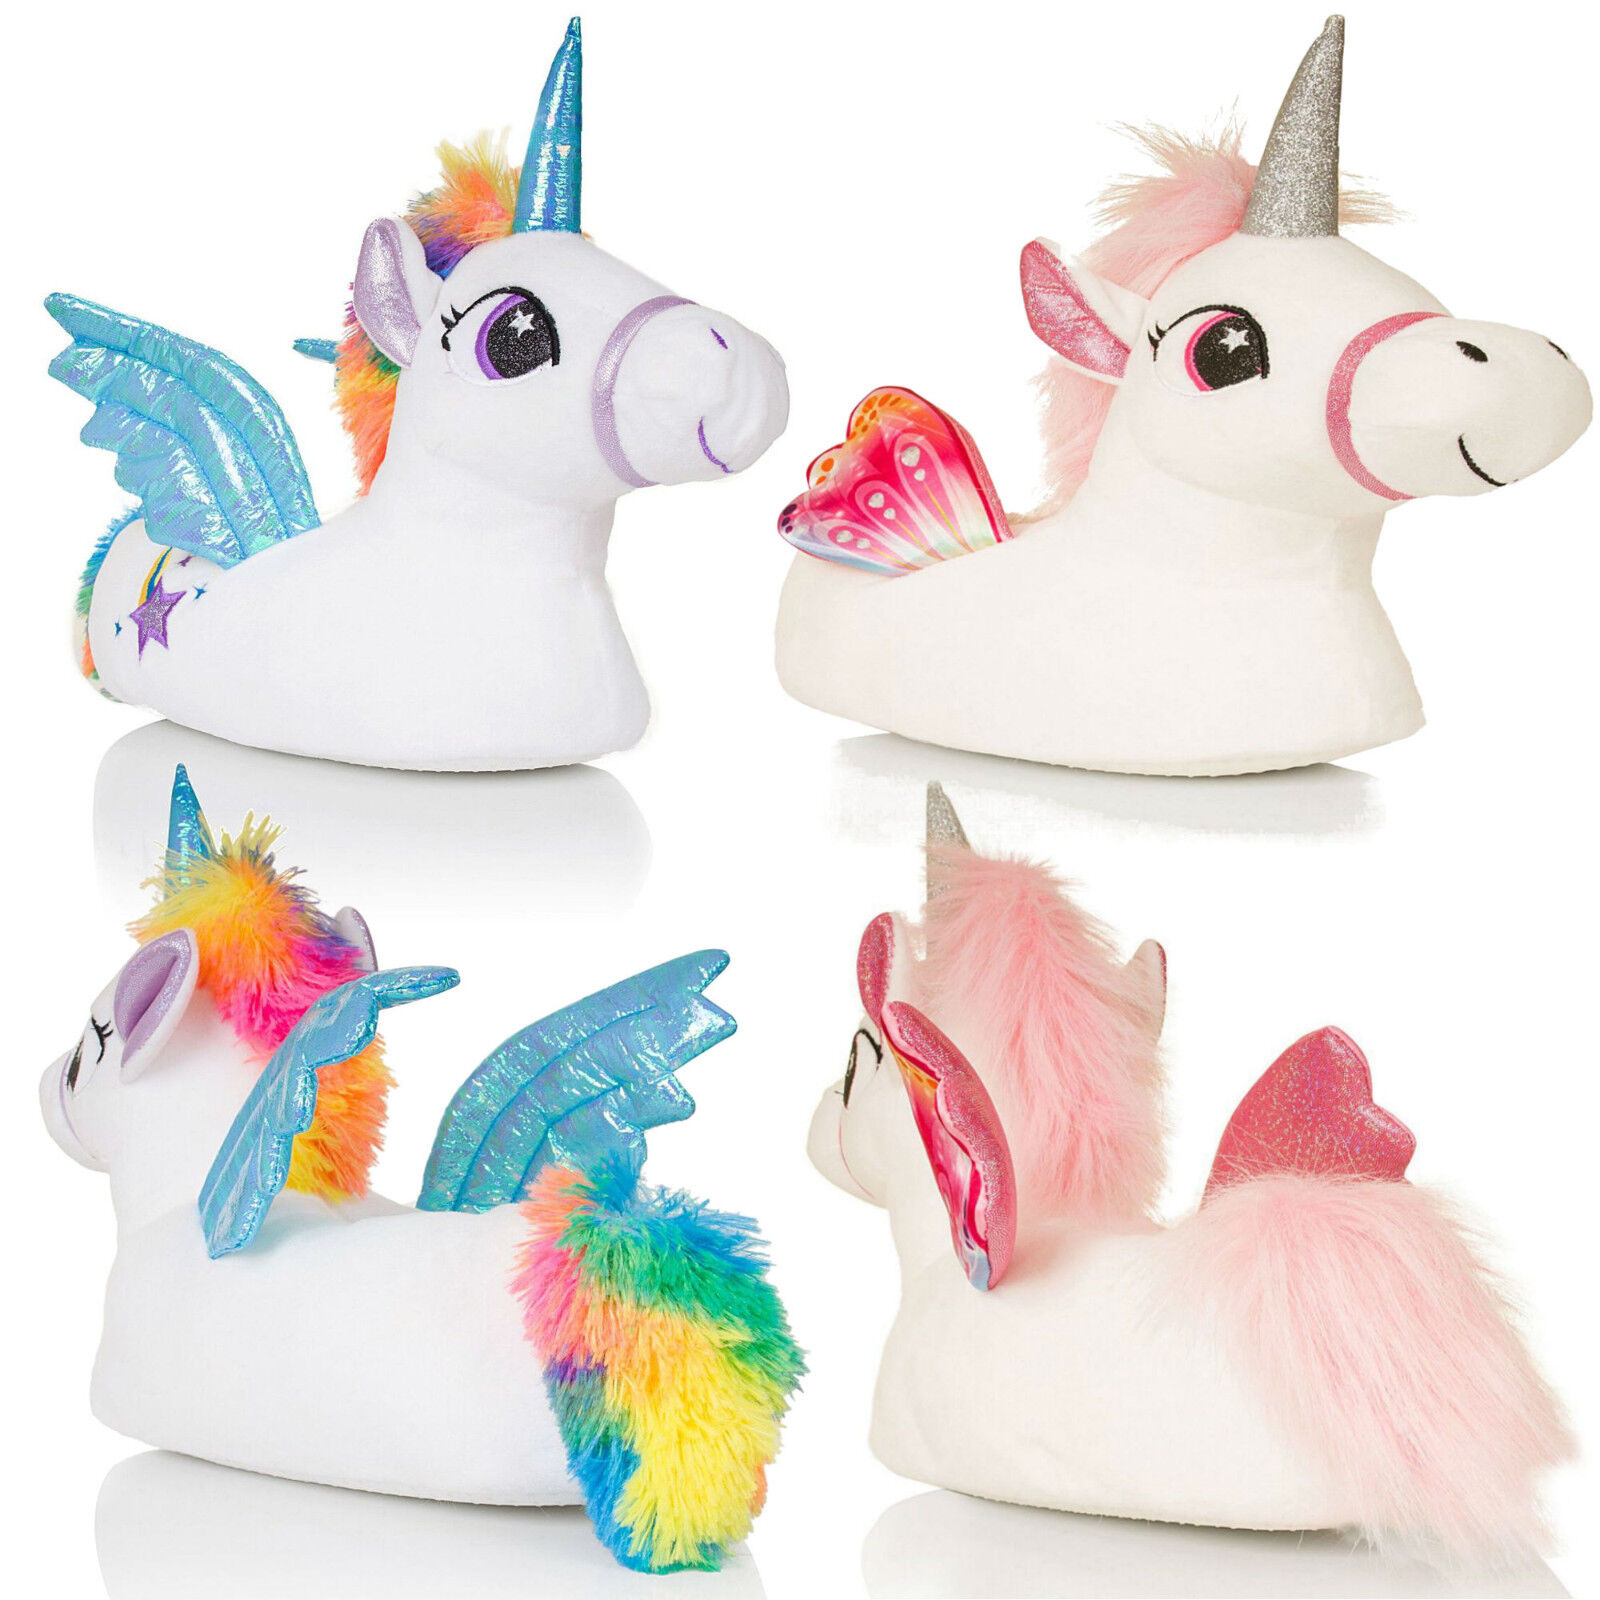 c3c84892671 Details about Matching Mother   Daughter Novelty 3D Plush Magical Winged Unicorn  Slippers Gift